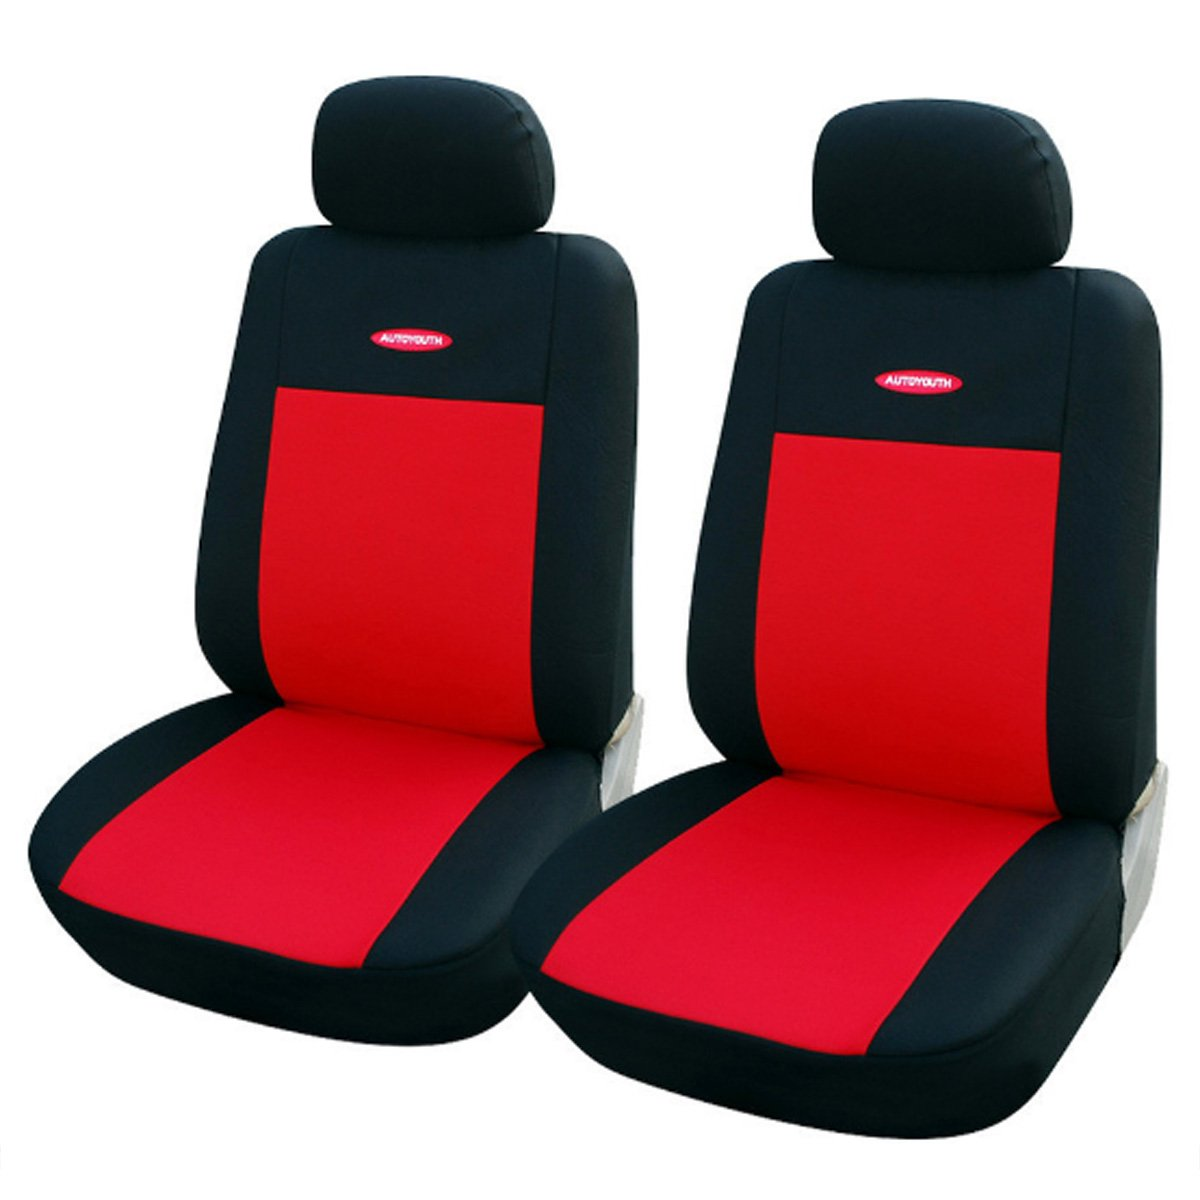 Red Car Seat Covers Universal Fit Polyester 3MM Composite Sponge Car Styling Lada Car Covers Seat Cover Accessories